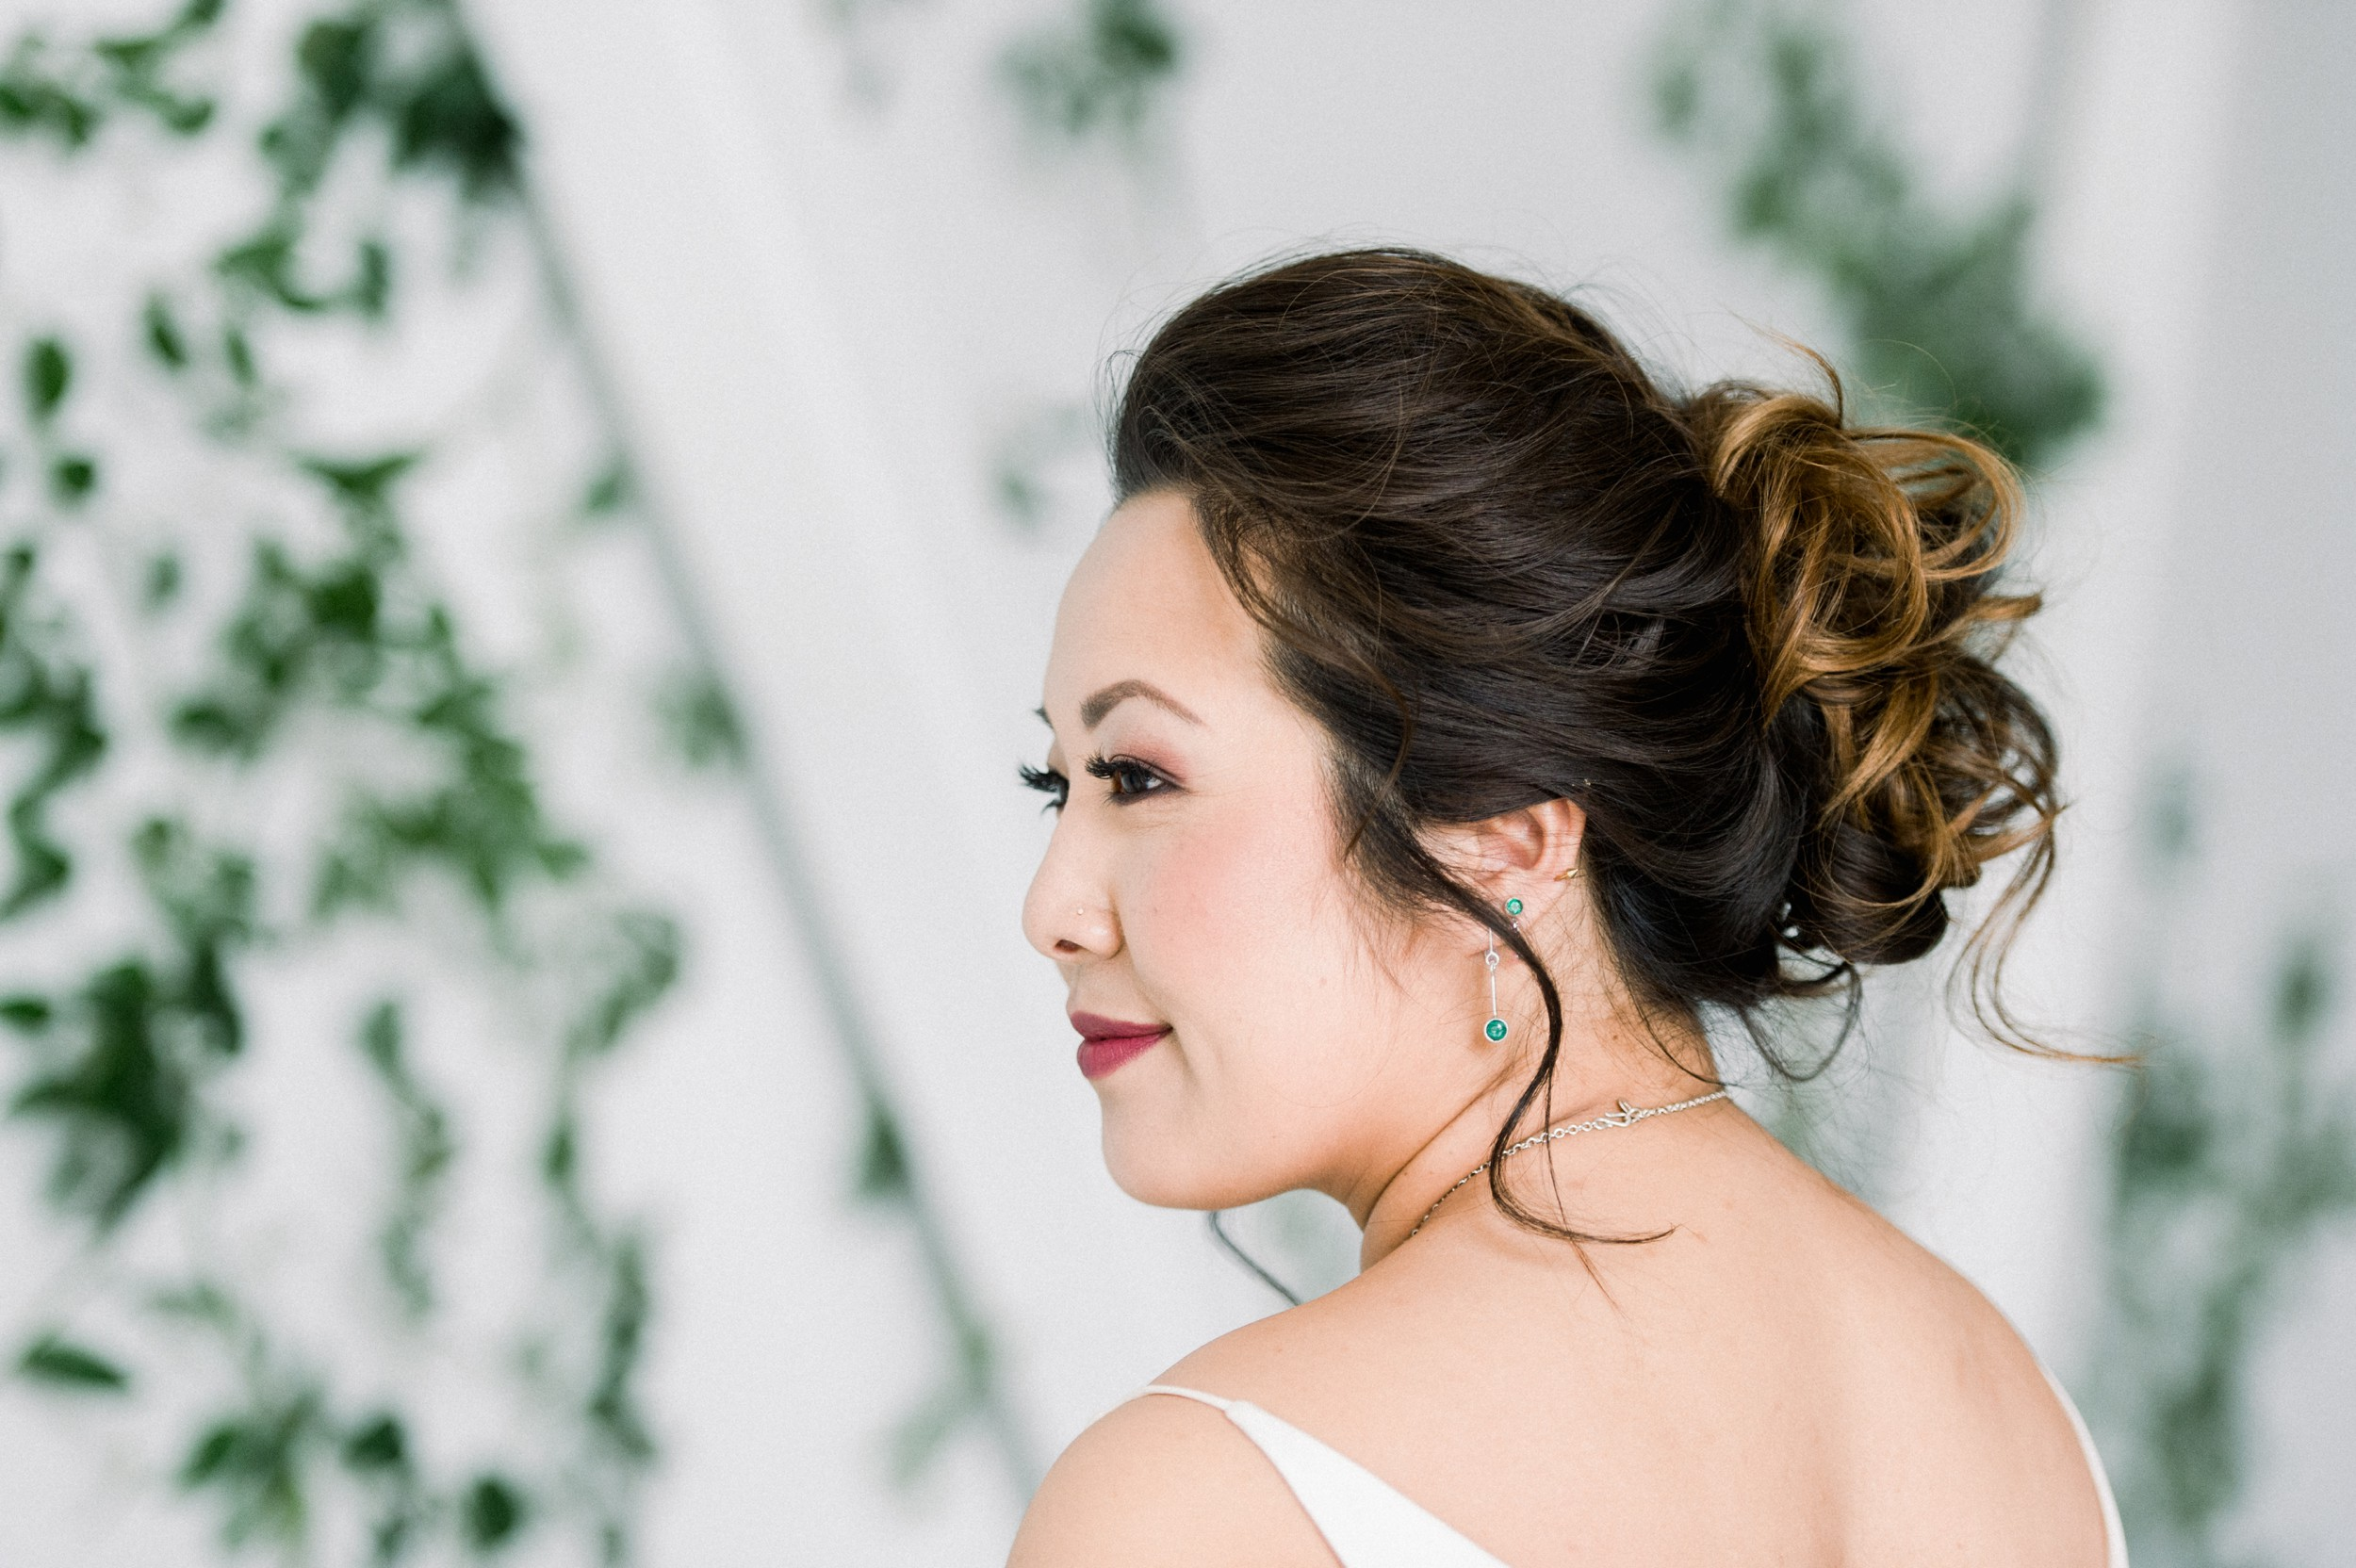 Bridal hair and makeup soft romantic with pop of color on lip | Artists for humanity wedding | Boston wedding | green botanical wedding | Bride Hair | Bride makeup